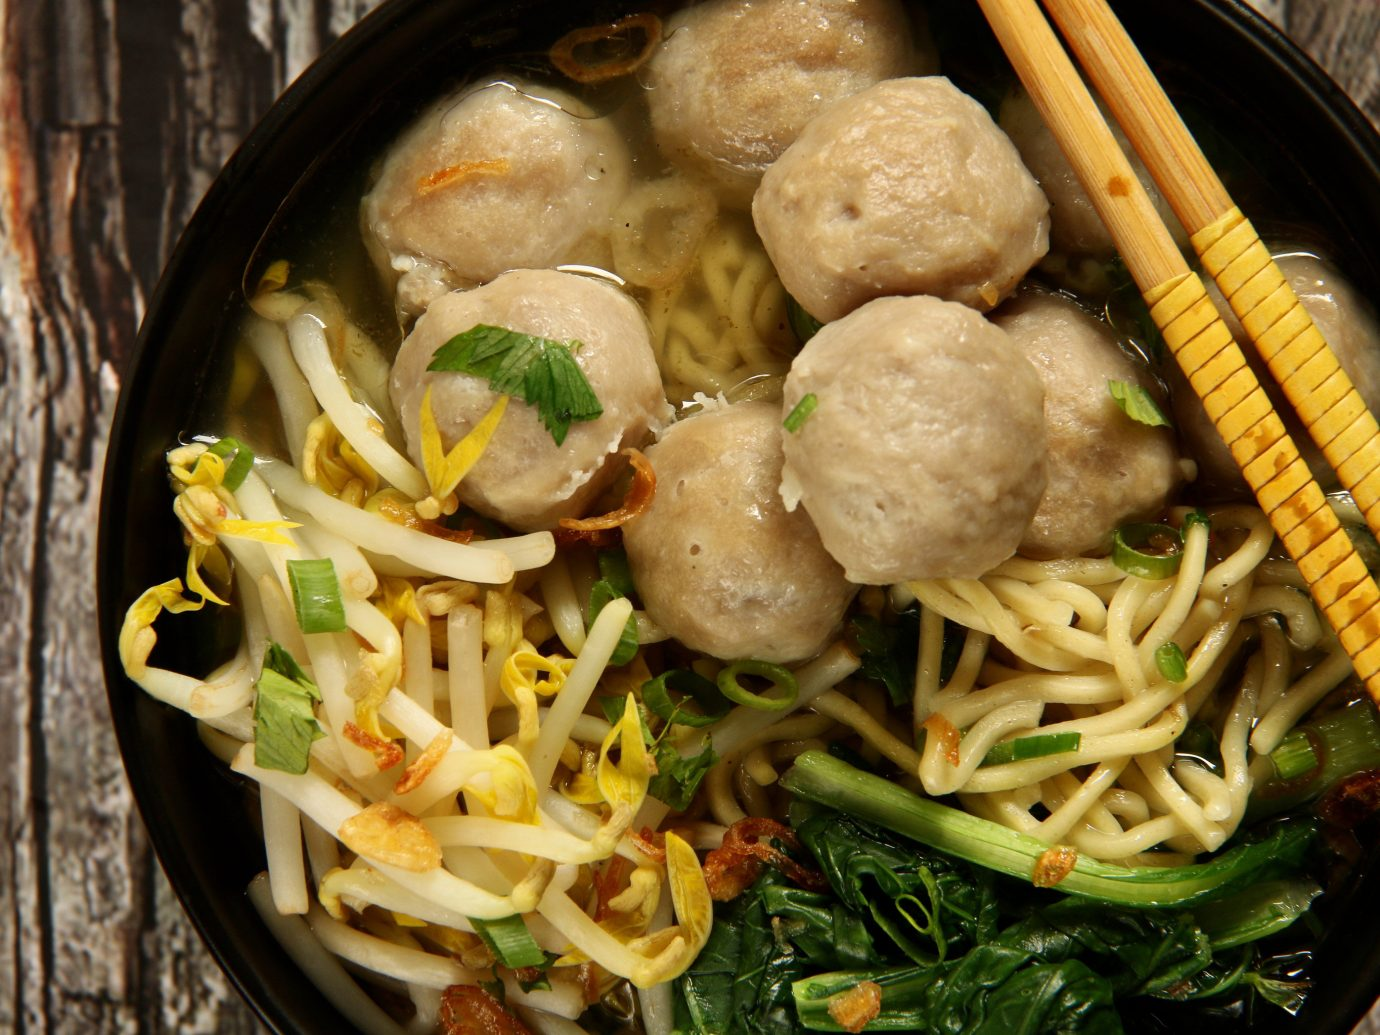 Food + Drink Southeast Asia Trip Ideas food dish noodle chinese noodles asian food chinese food vegetarian food chow mein vegetable thai food lo mein fish ball southeast asian food yakisoba rice noodles recipe pad thai indonesian food meat meal cooked